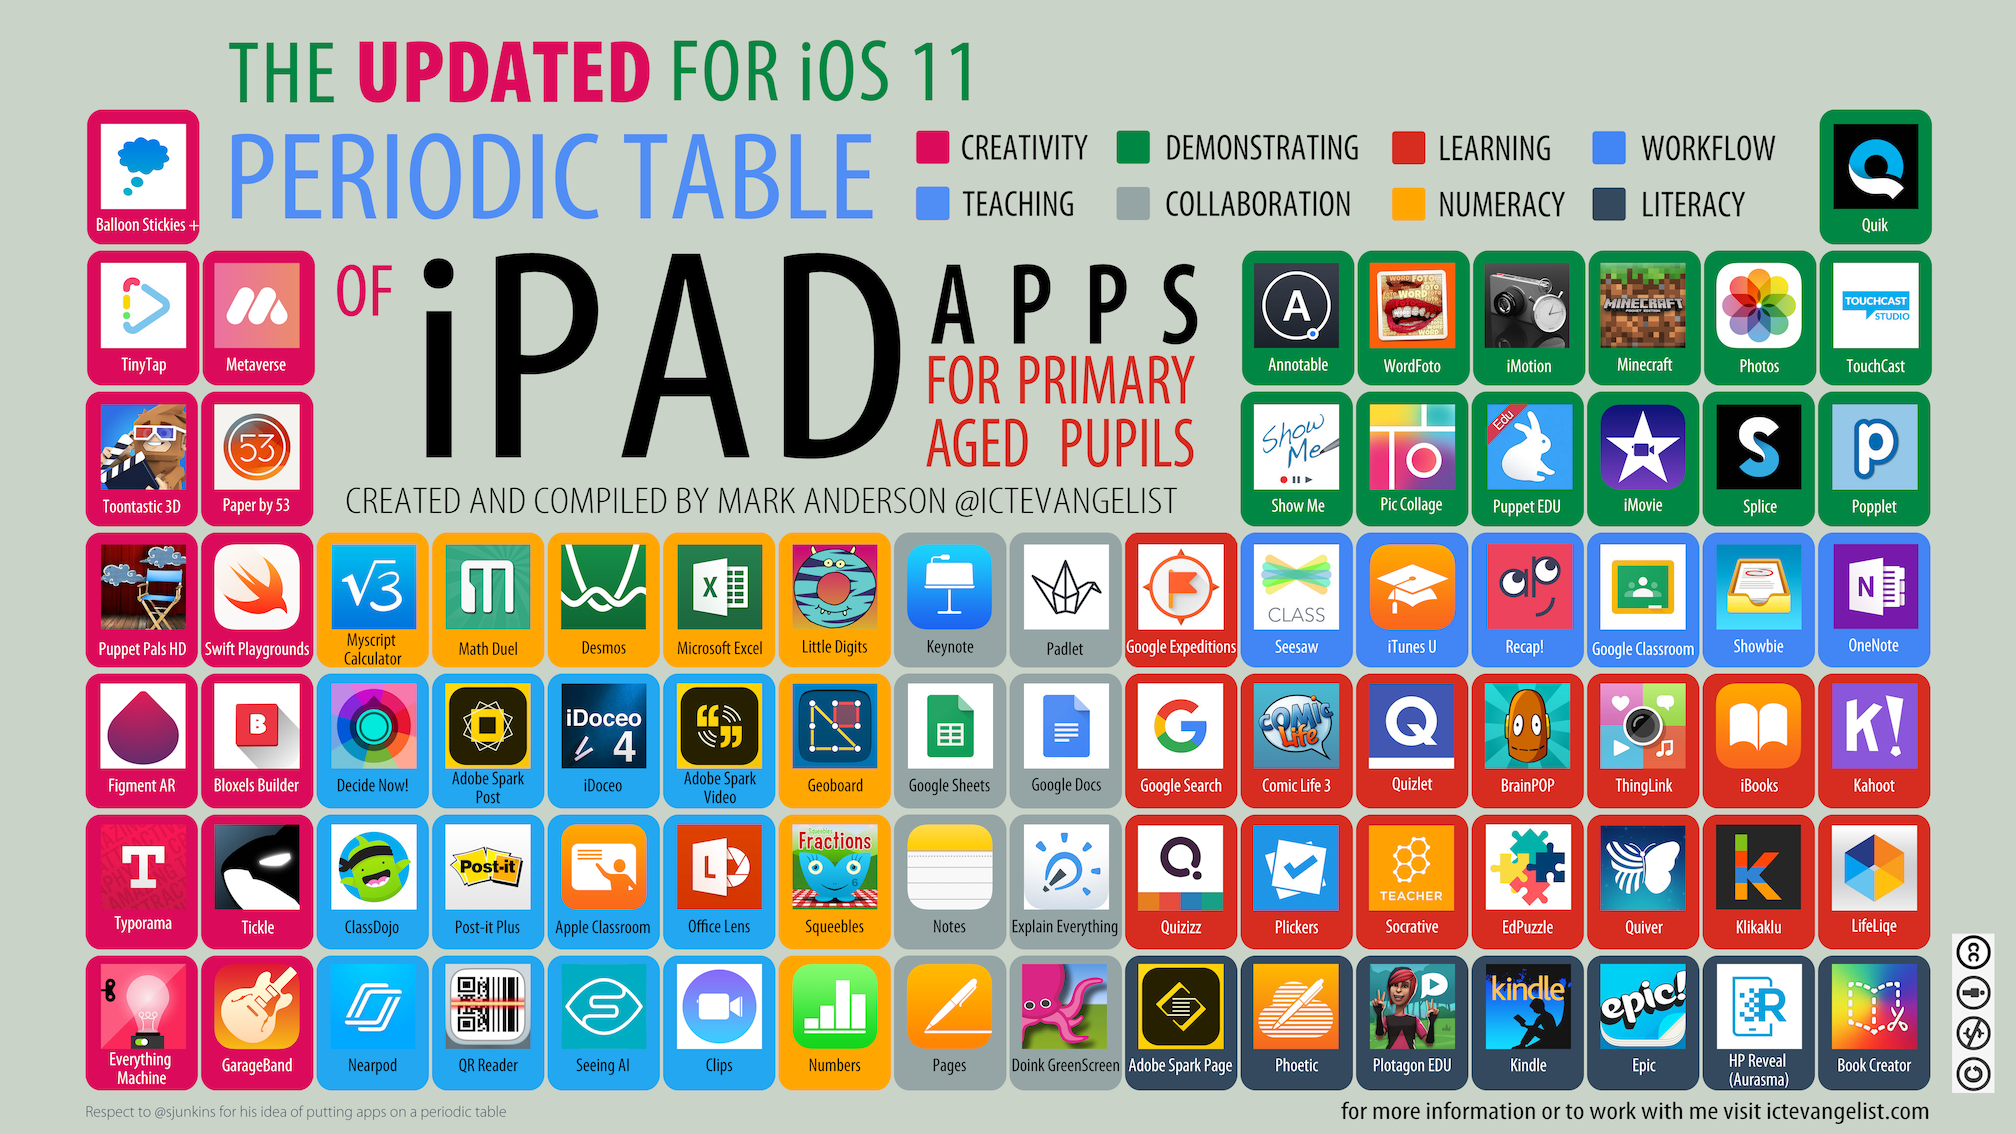 Ar ictevangelist new and updated periodic table of ipad apps for primary aged pupils for ios 11 urtaz Gallery